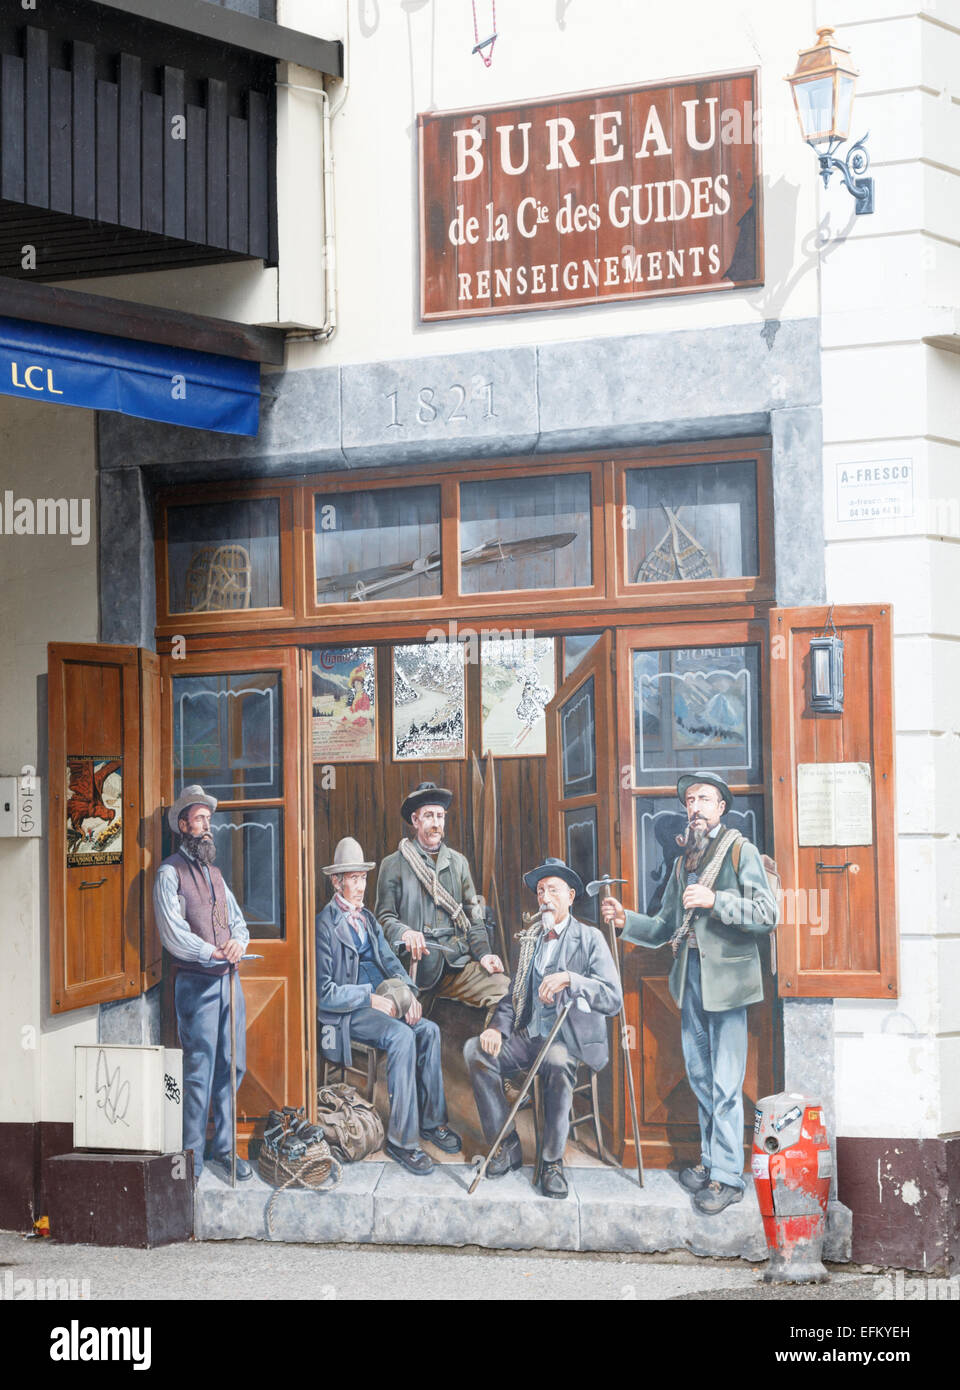 Mural painted on the wall of a building in Chamonix celebrates the